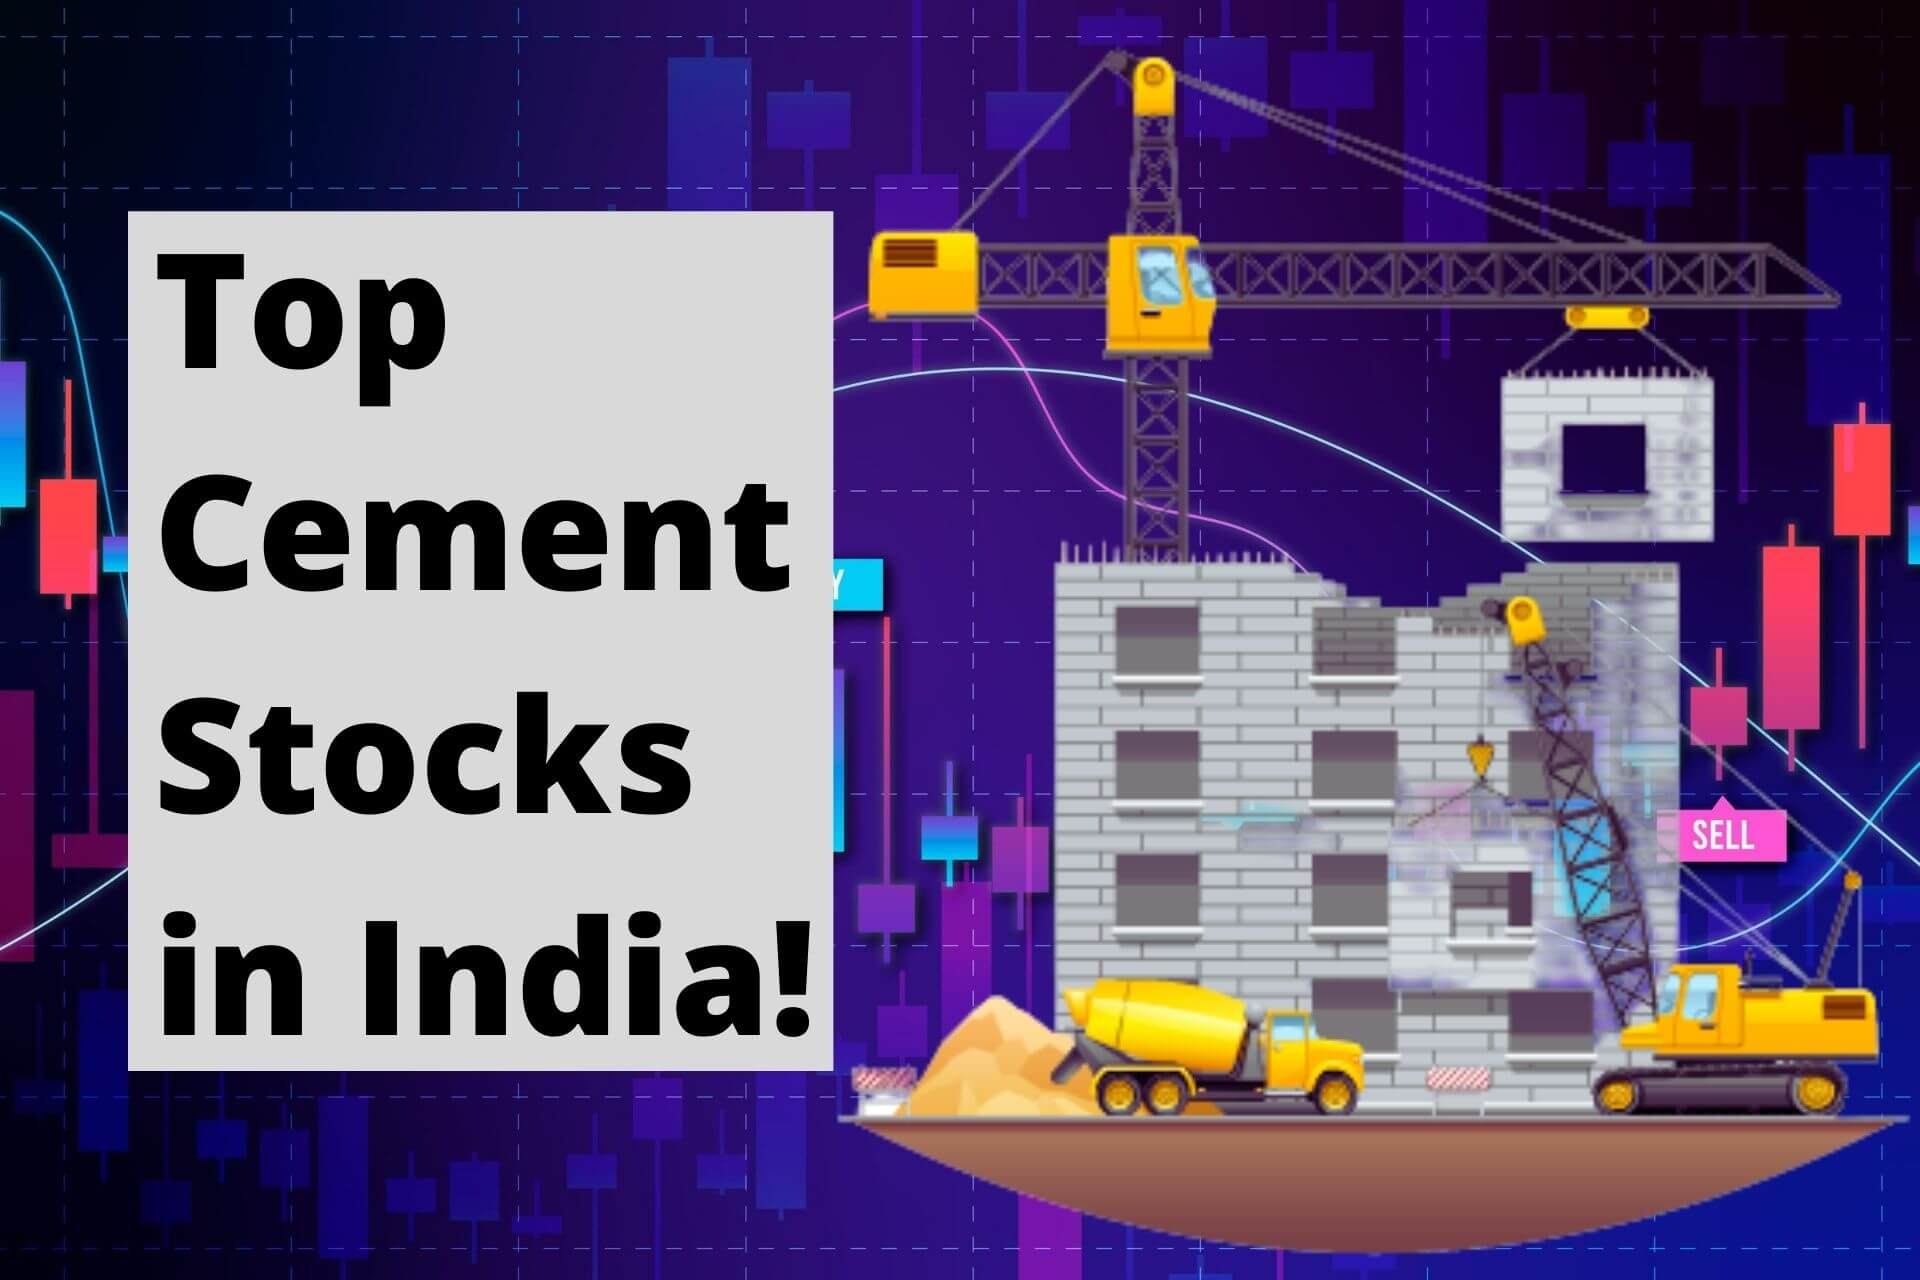 Top Cement Companies in India 2021 - Best Cement Stock to Buy! cover